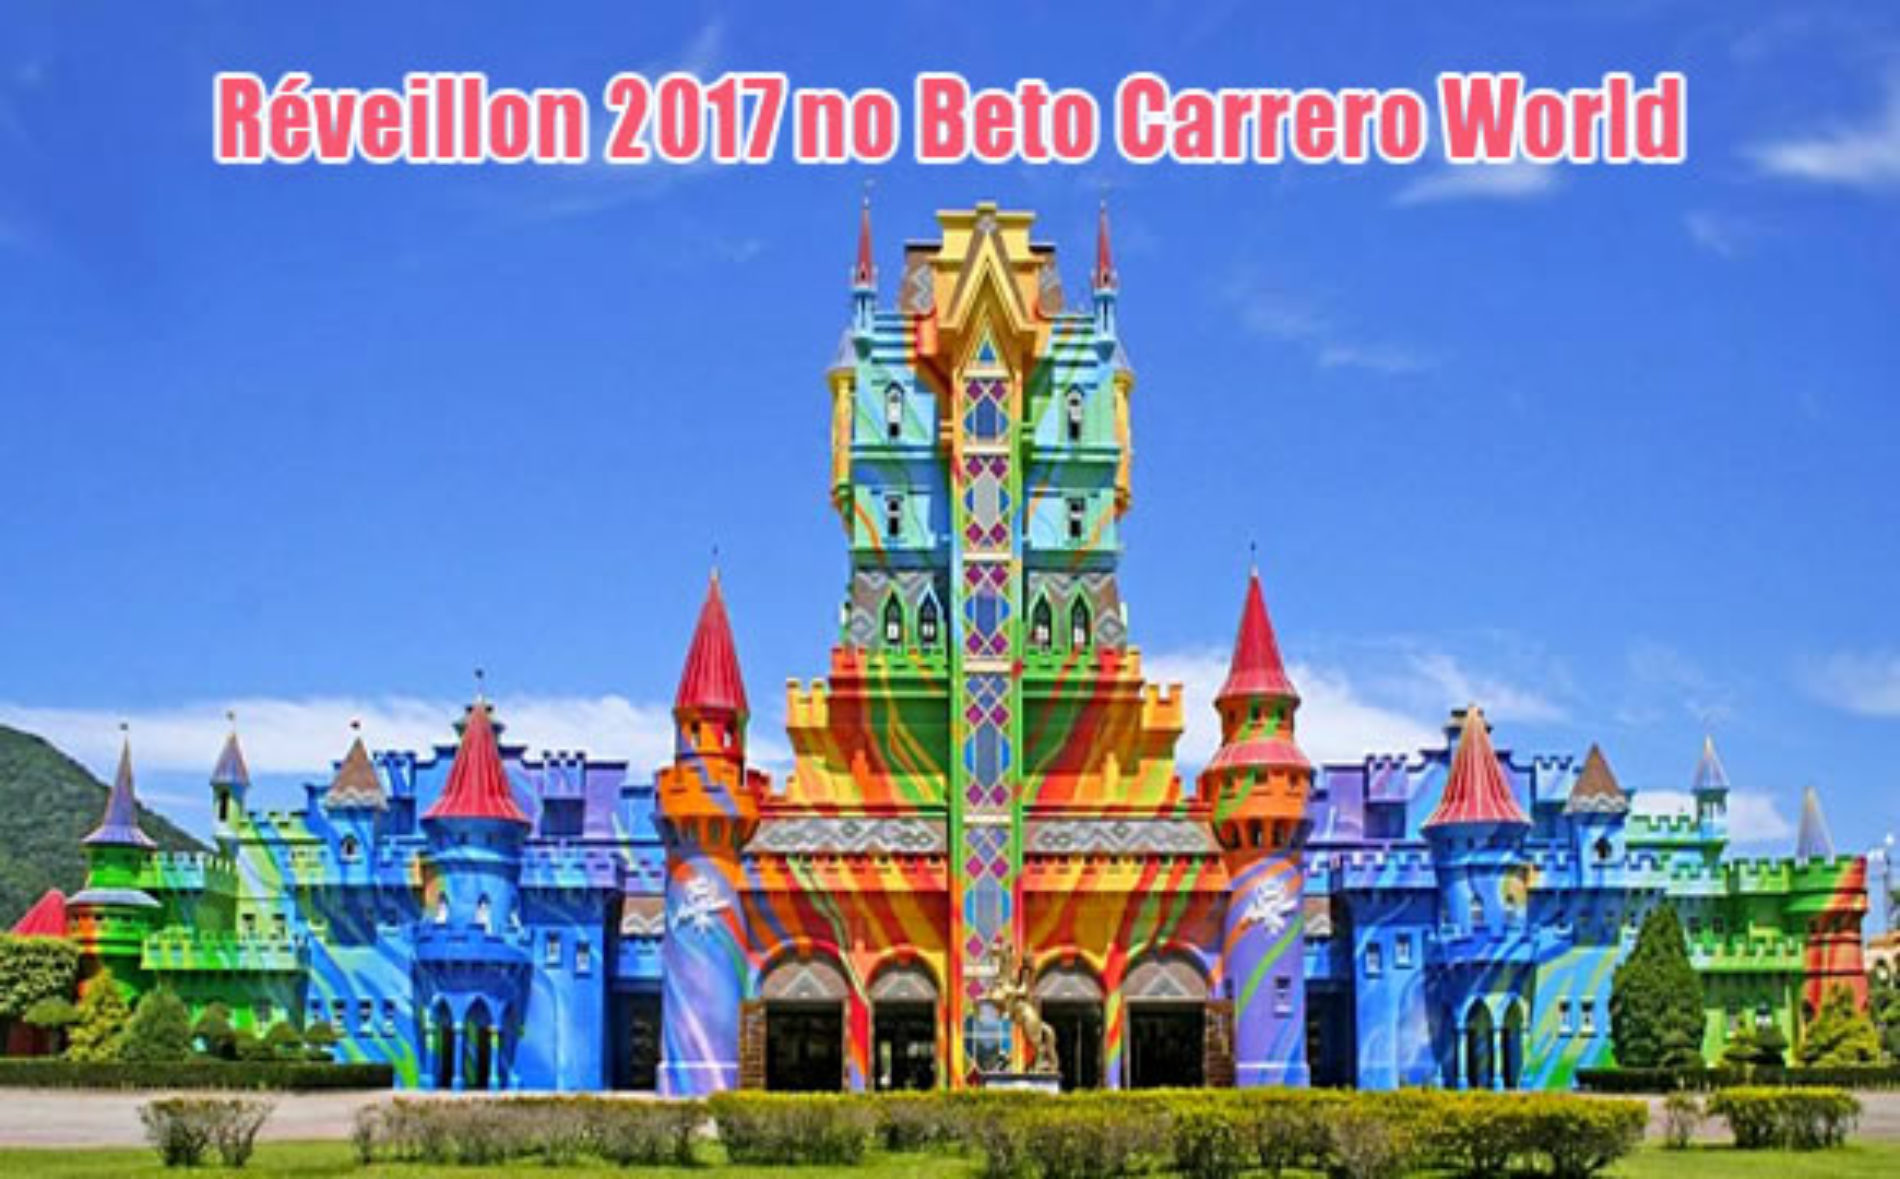 Réveillon 2017 no Beto Carrero World